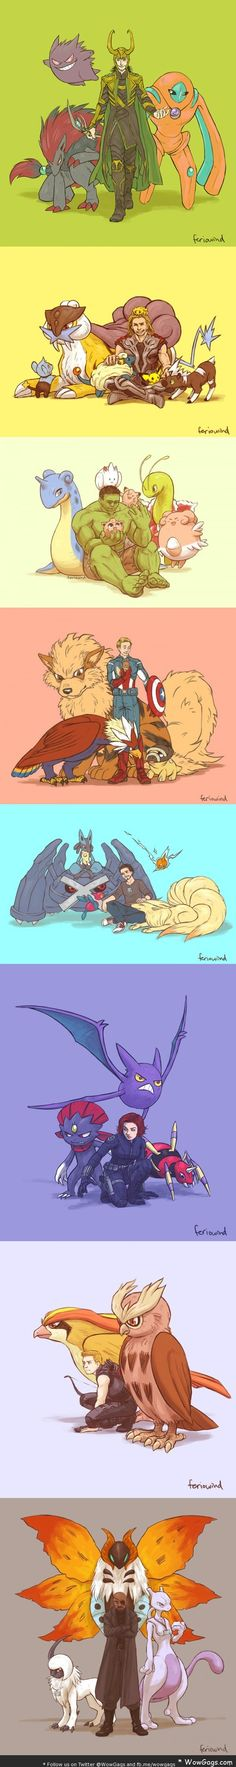 WowGags! If the Avengers had Pokemon